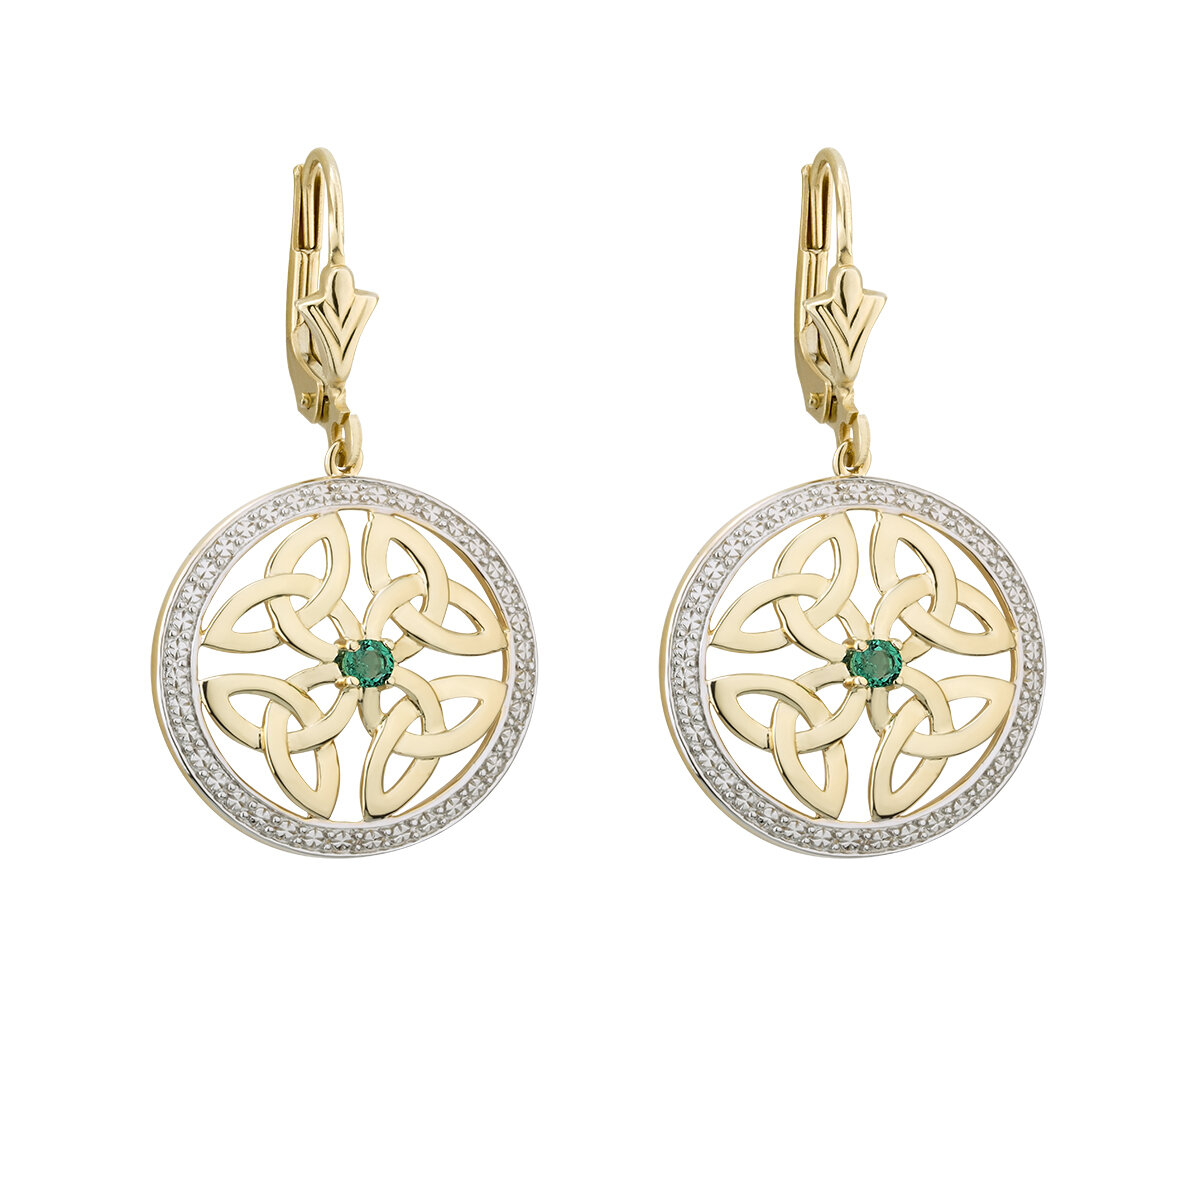 14K gold emerald round trinity knot earrings s33951 from Solvar